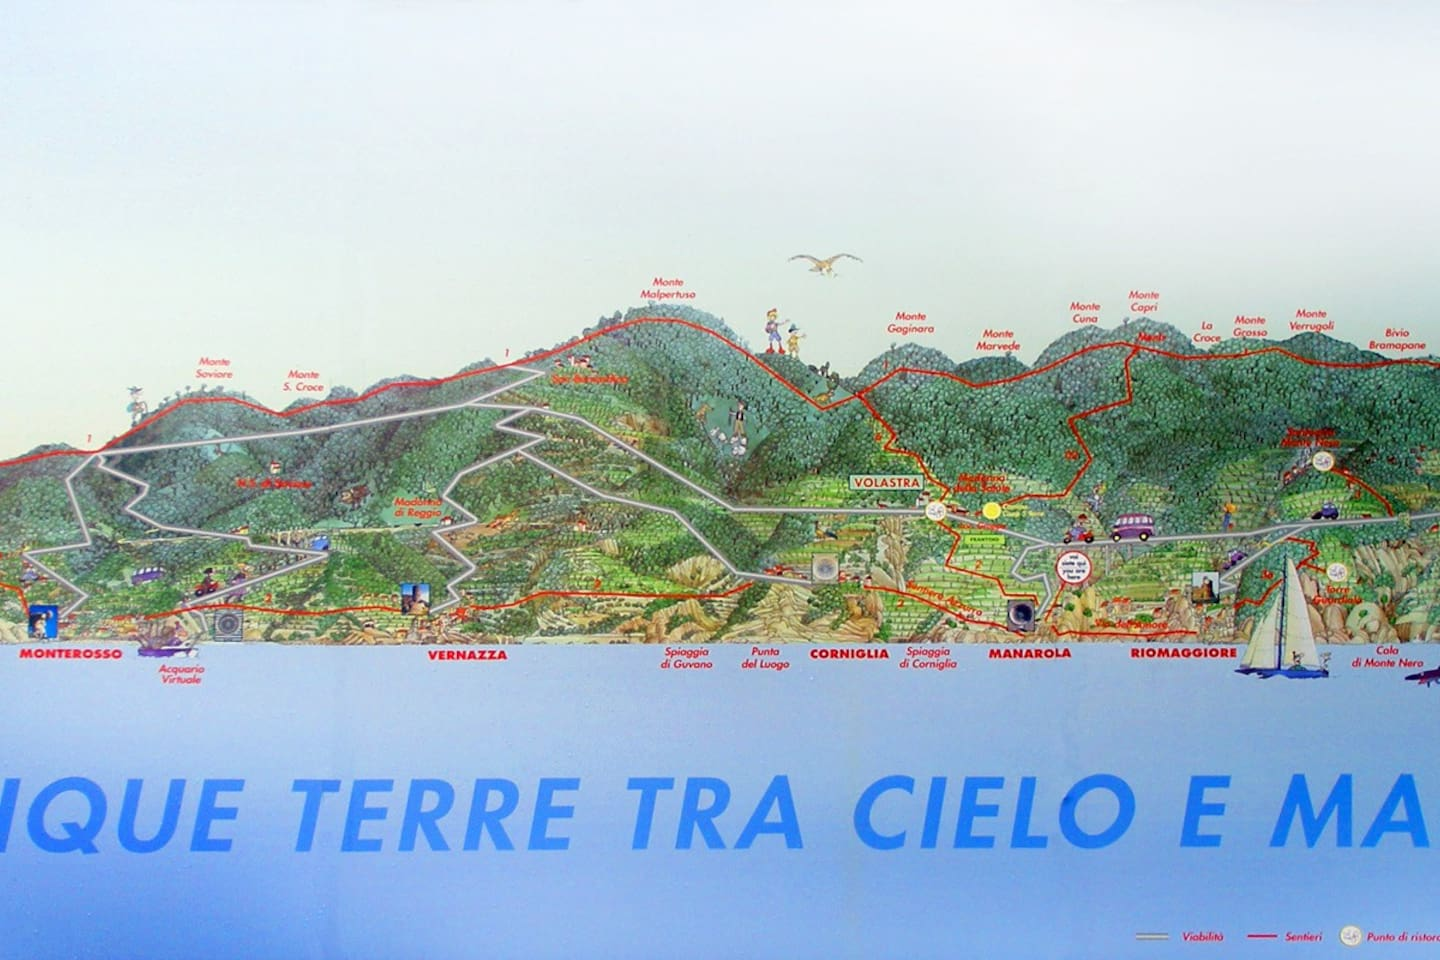 Cinque Terre's maps of paths